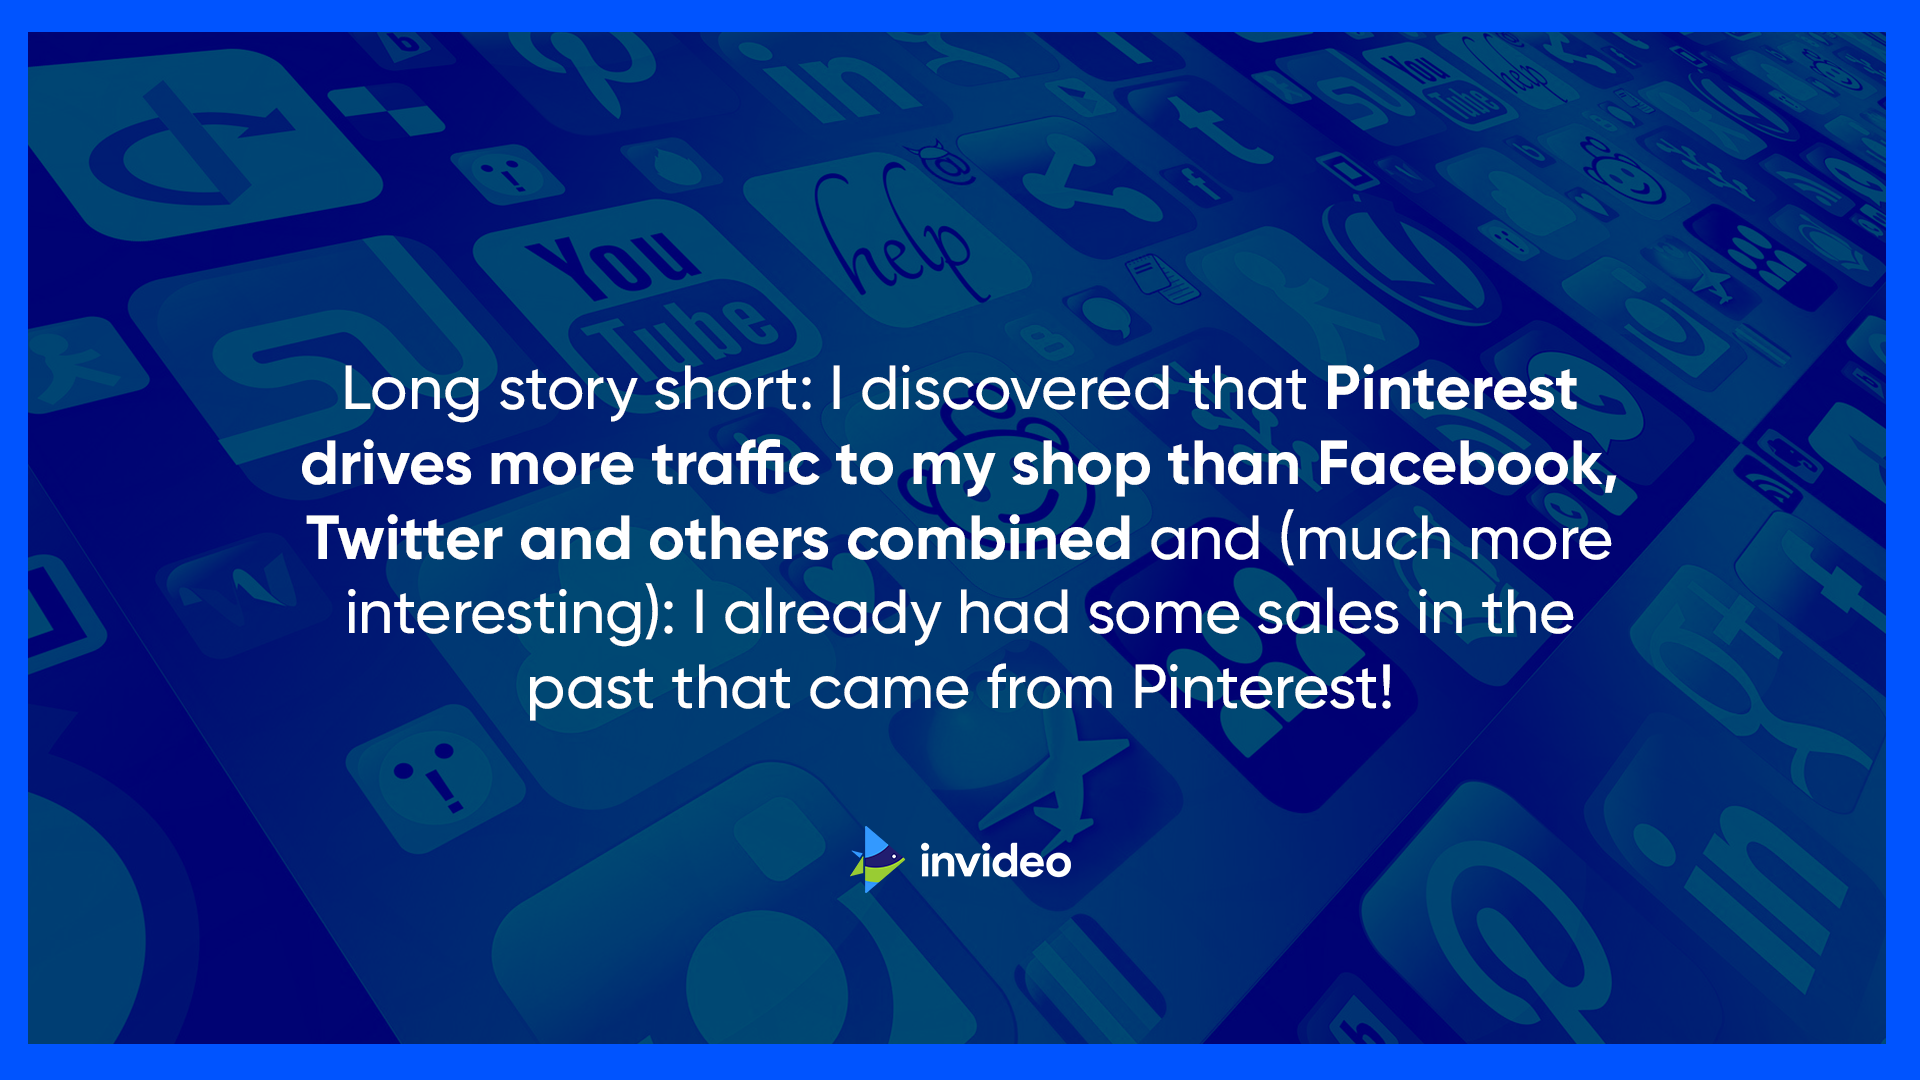 Pinterest Drives More Traffic Than Facebook